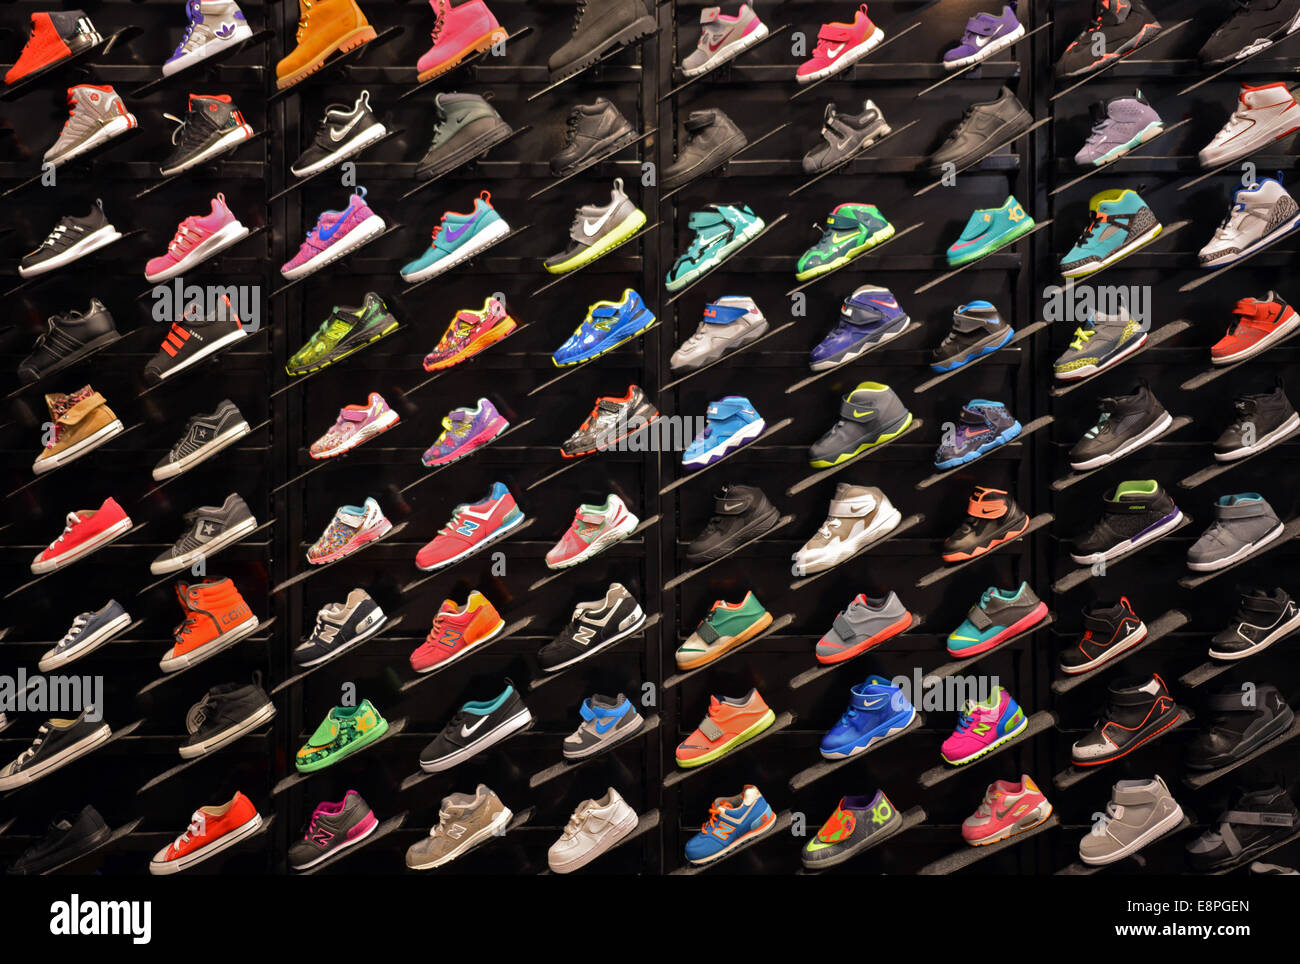 Colorful display of children's athletic shoes at Foot